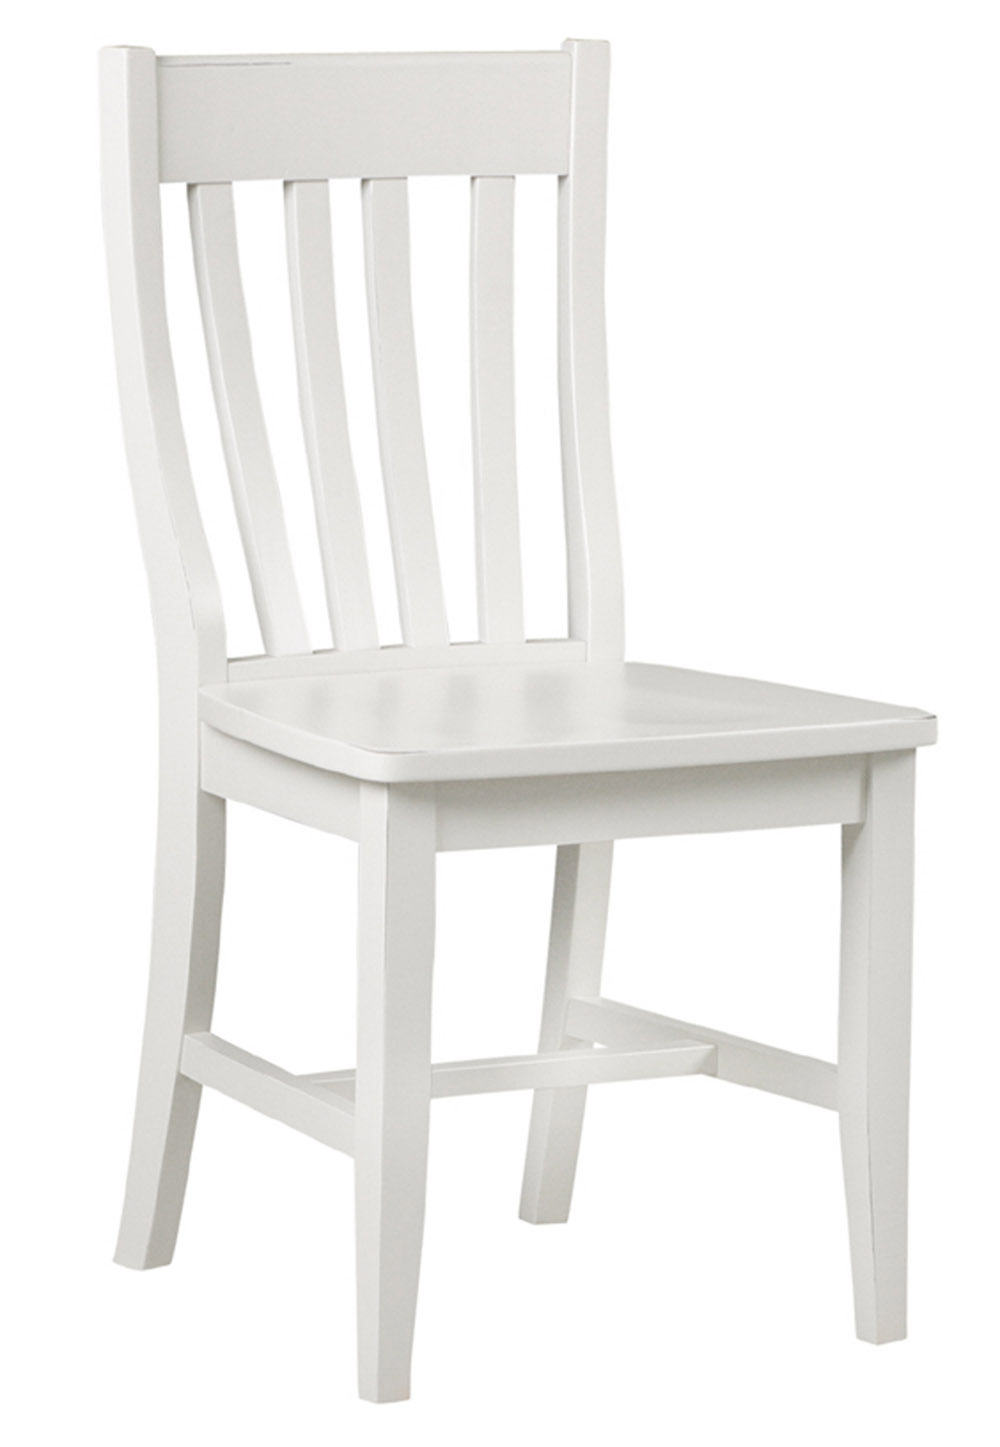 Cottage Dining Chairs Chair Pads Amp Cushions